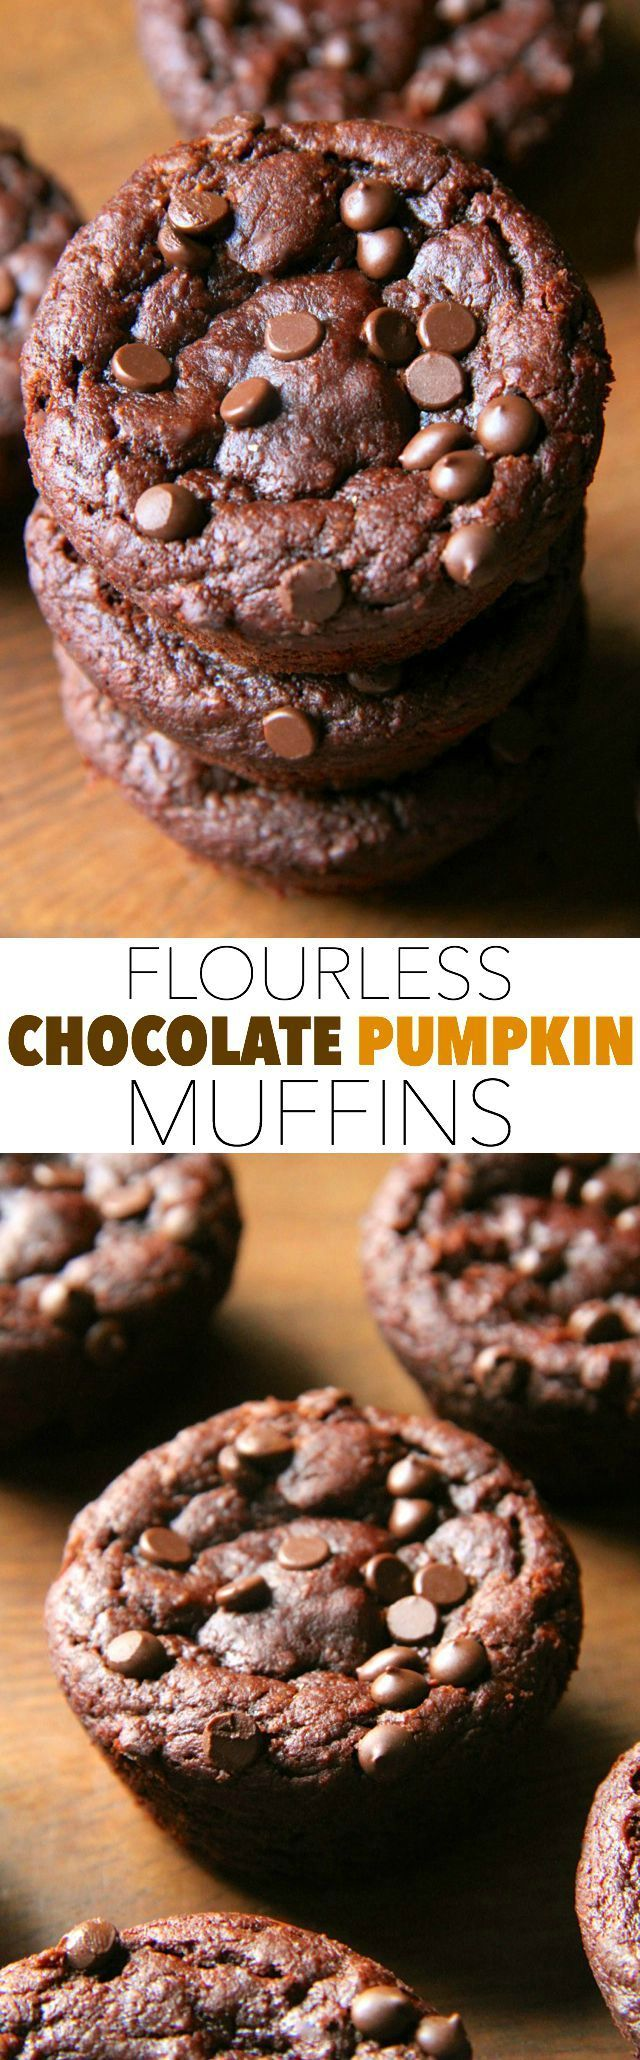 Flourless Chocolate Pumpkin Muffins - Gluten-free, grain-free, oil-free, dairy-free, refined sugar-free, but so soft and delicious that you'd never be able to tell!